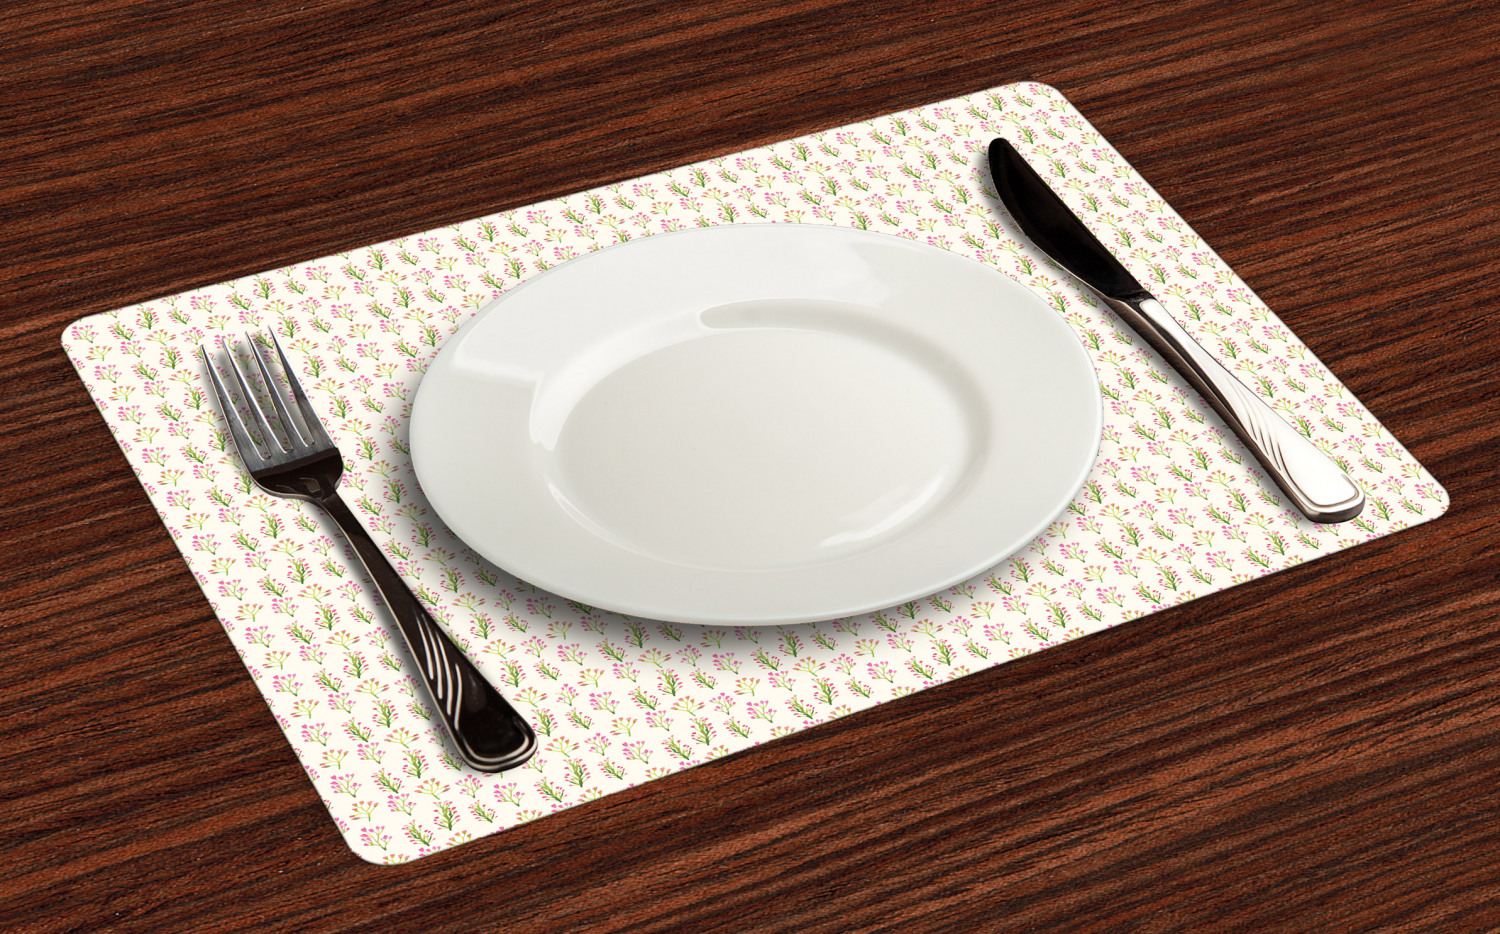 Ambesonne-Flower-Pattern-Placemat-Set-of-4-Fabric-Place-Mats-for-Table-Decor thumbnail 97